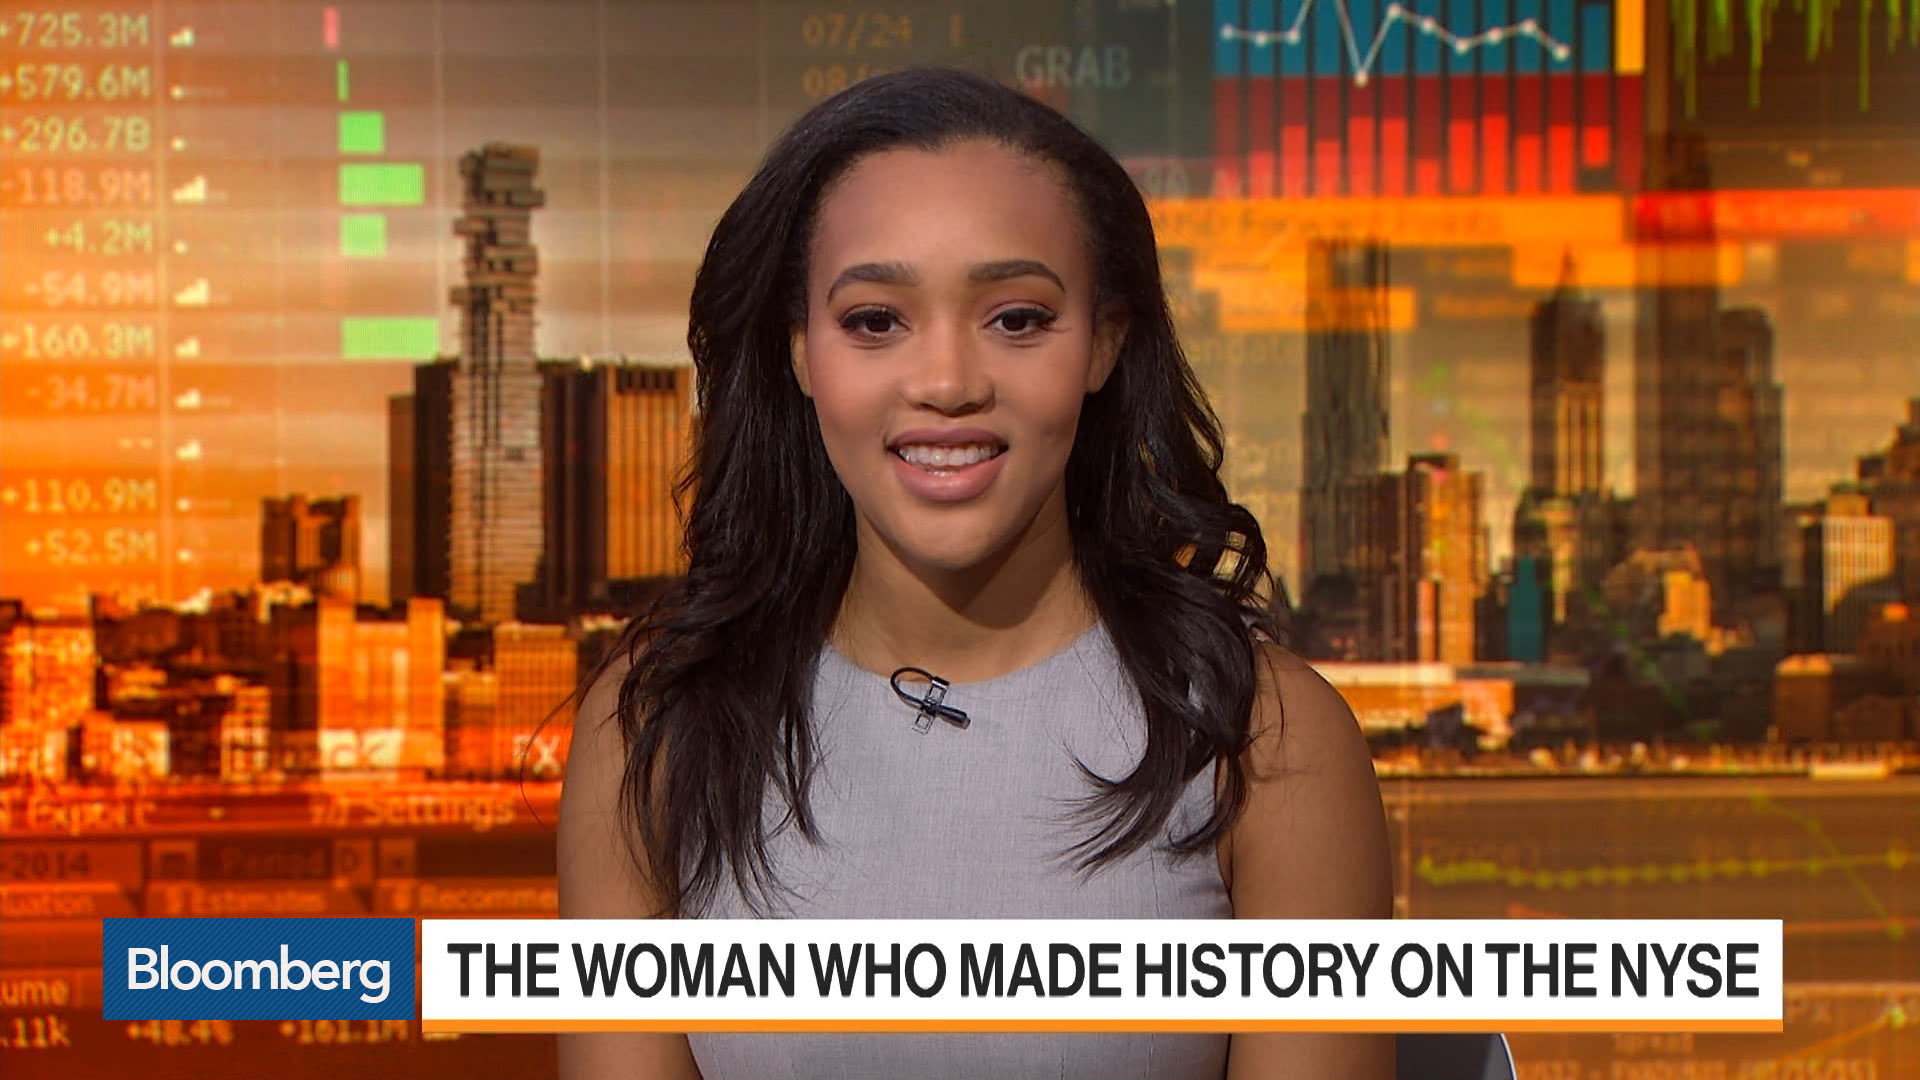 How This Woman Made History on the NYSE